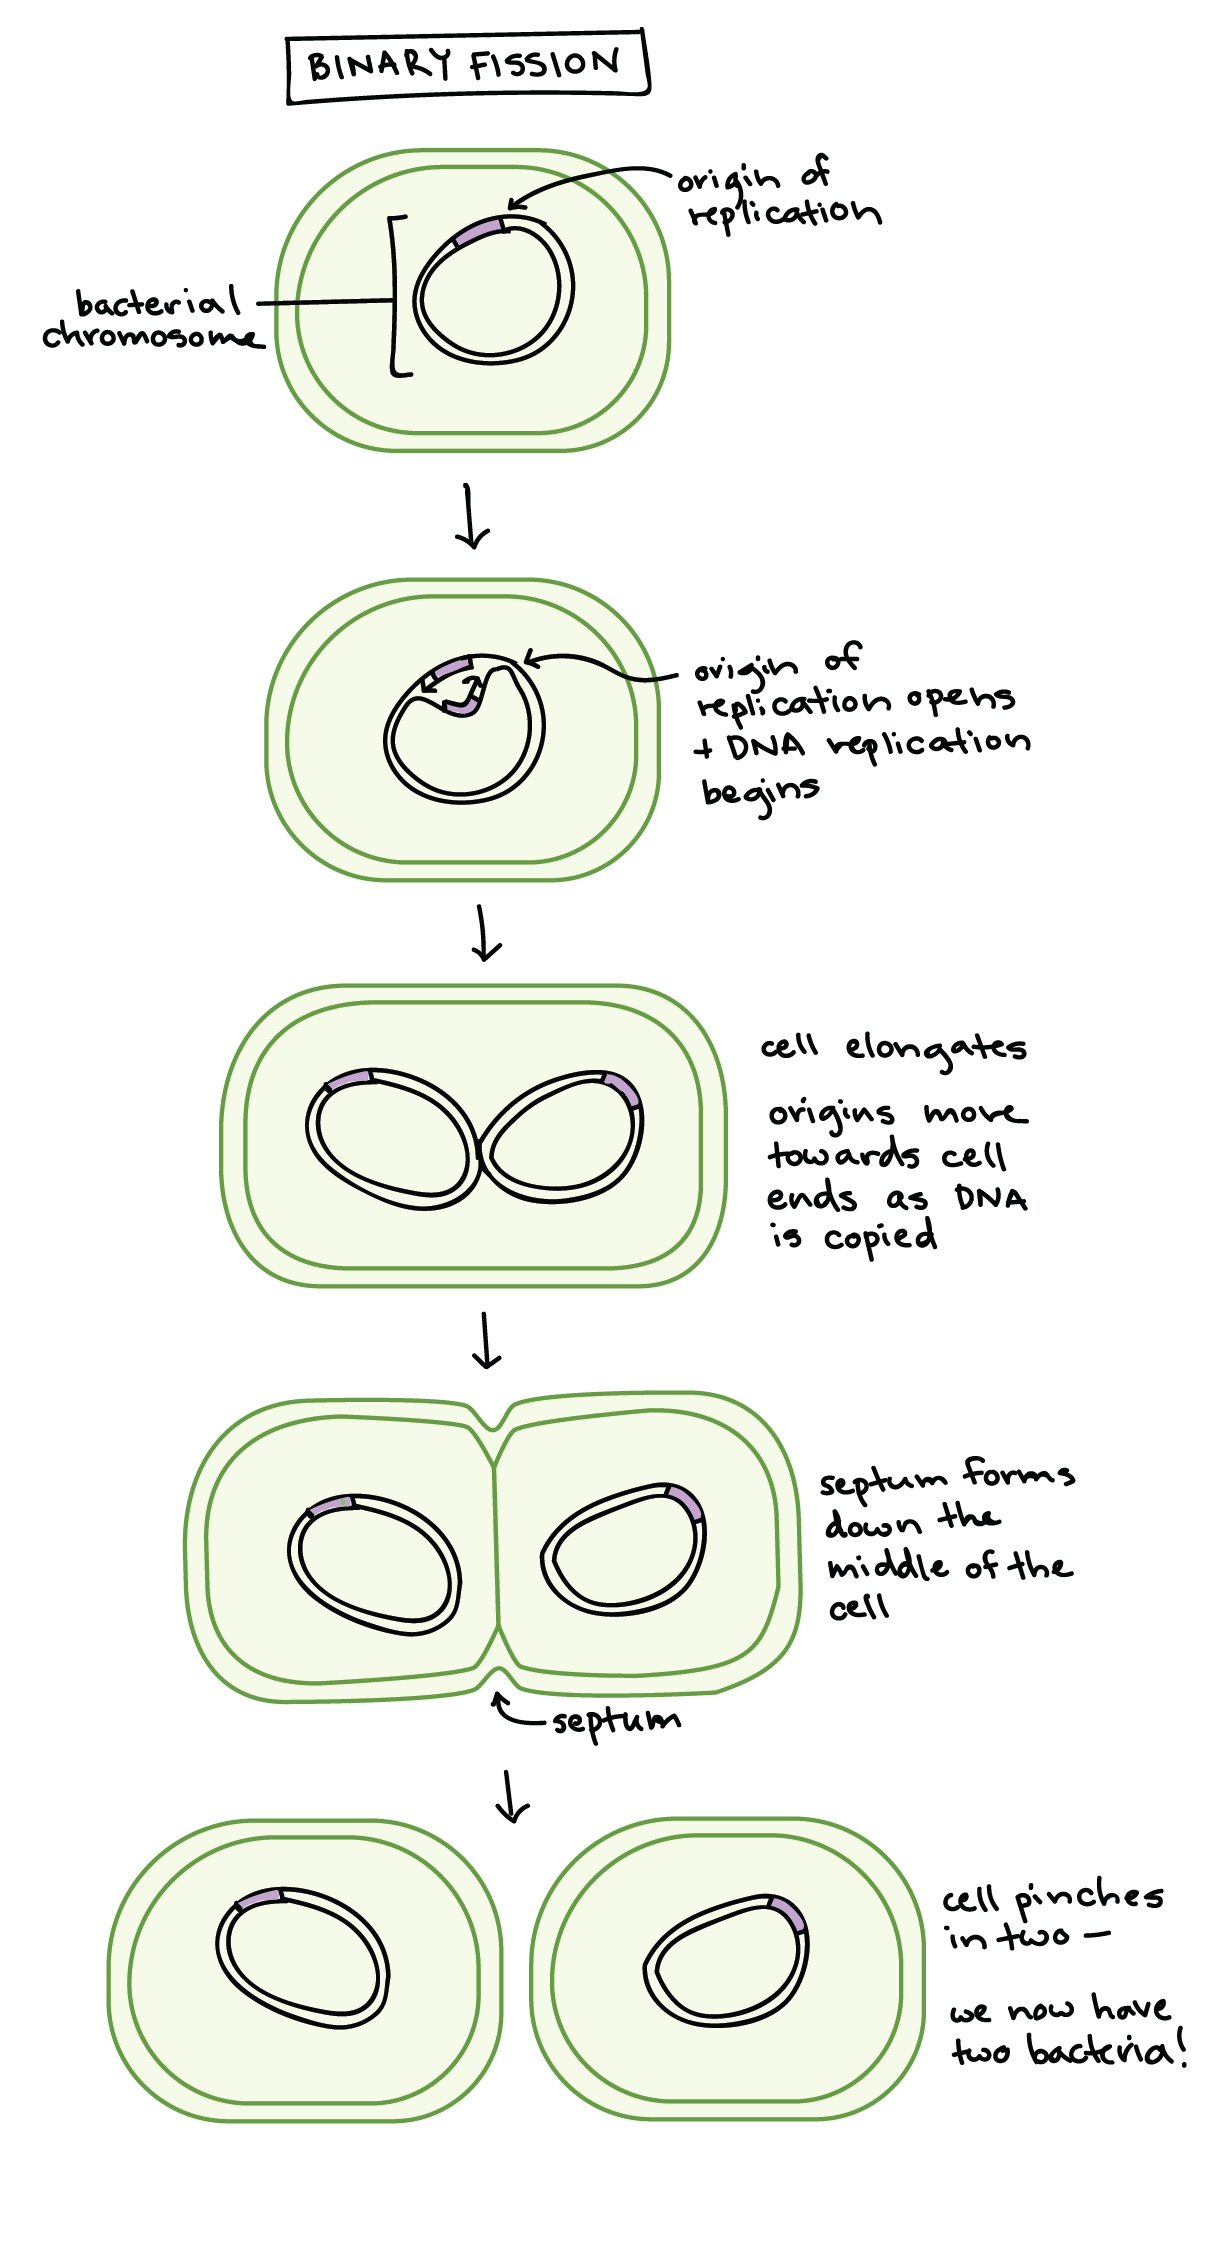 Asexual reproduction bacteria cell model